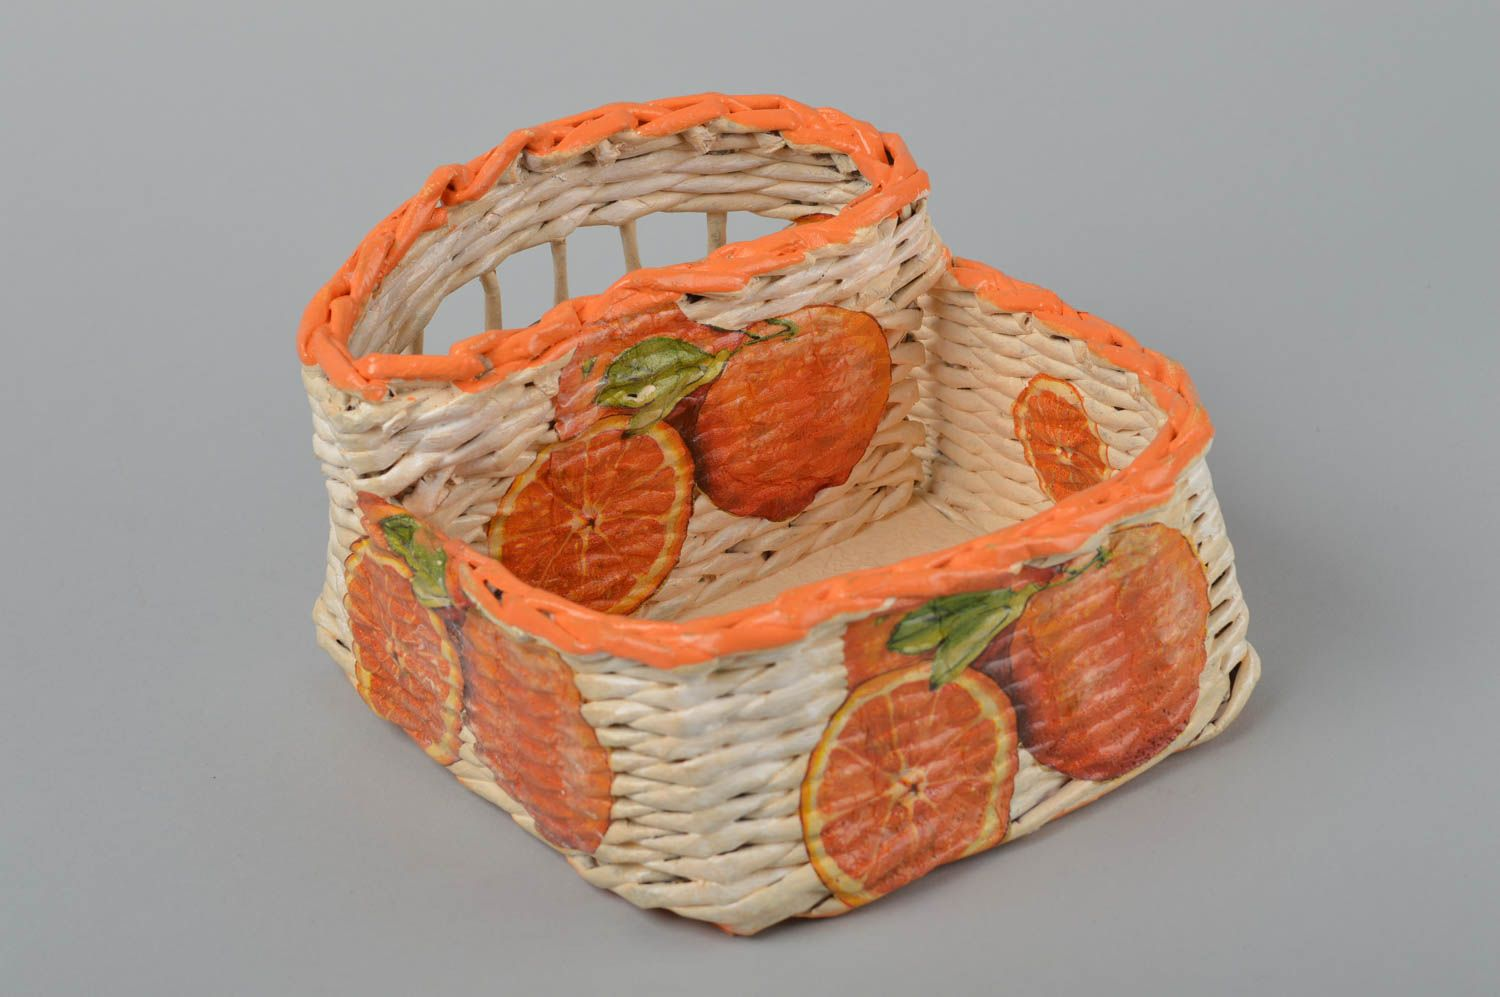 Kitchen Utensils Beautiful Handmade Paper Basket Newspaper Craft Room Decor Ideas Home Goods